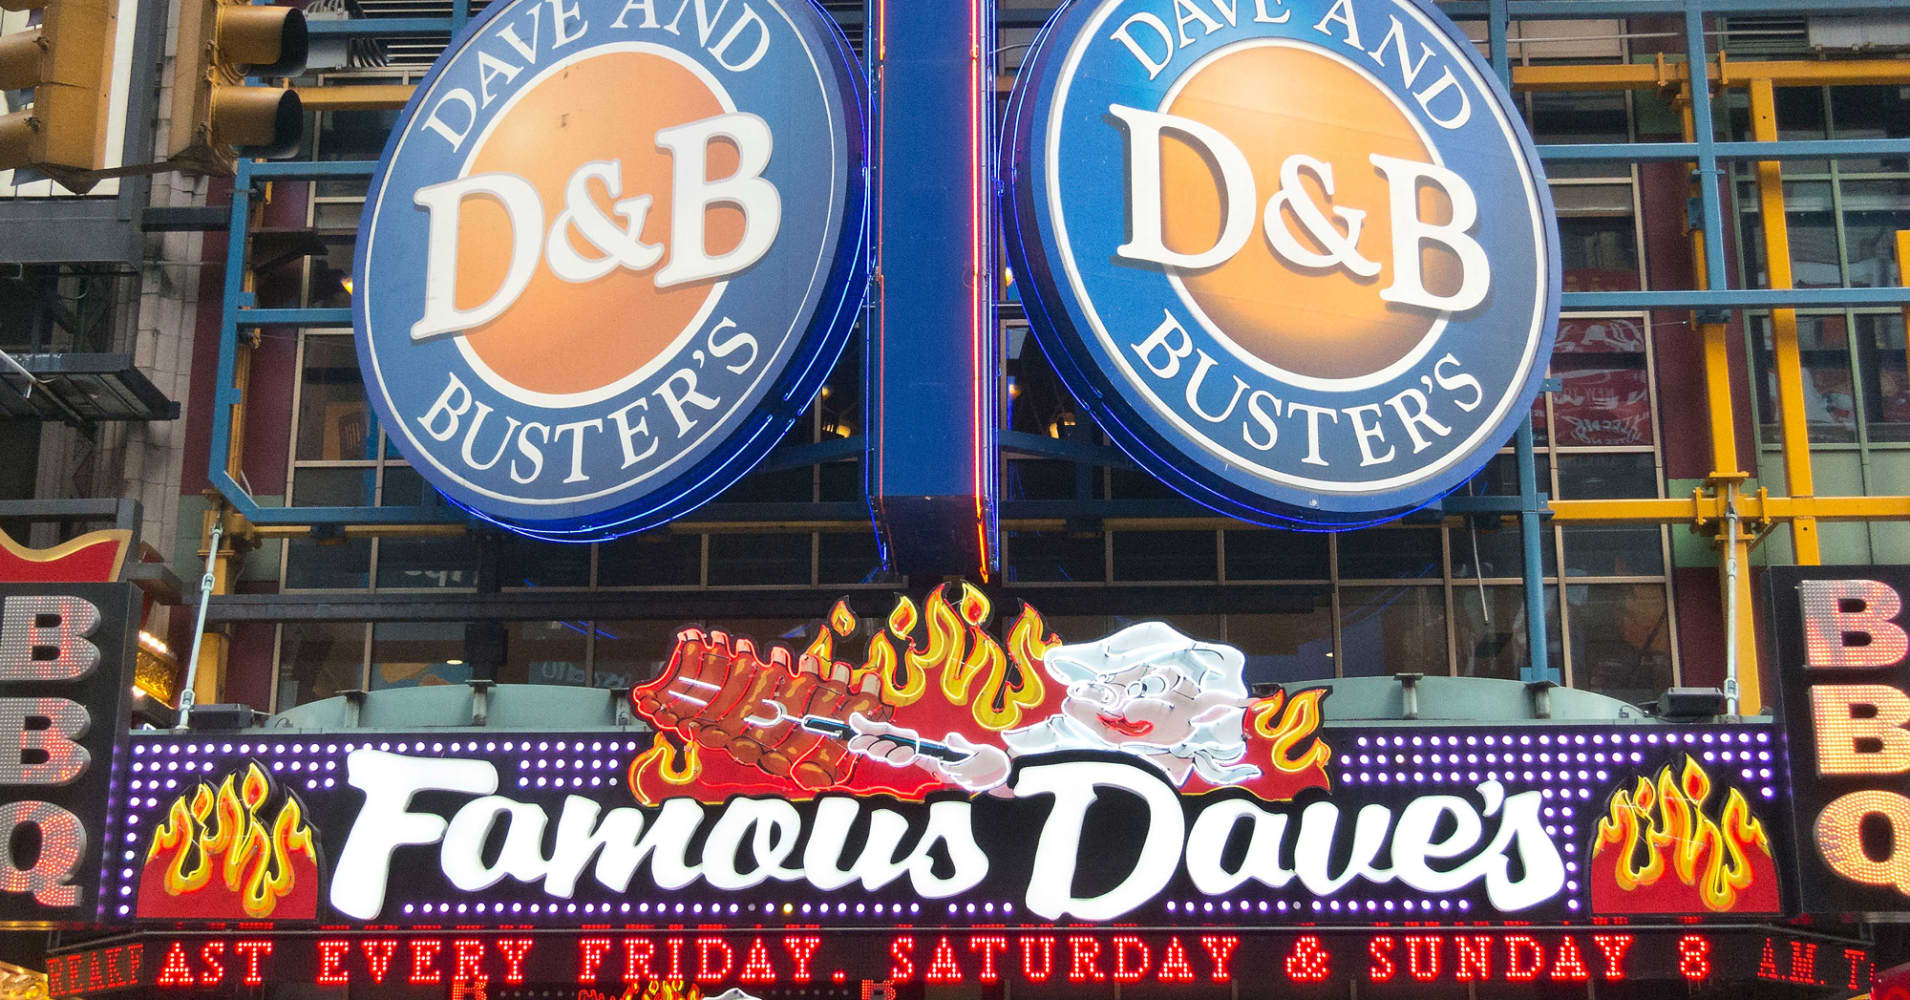 Dave and busters ipo